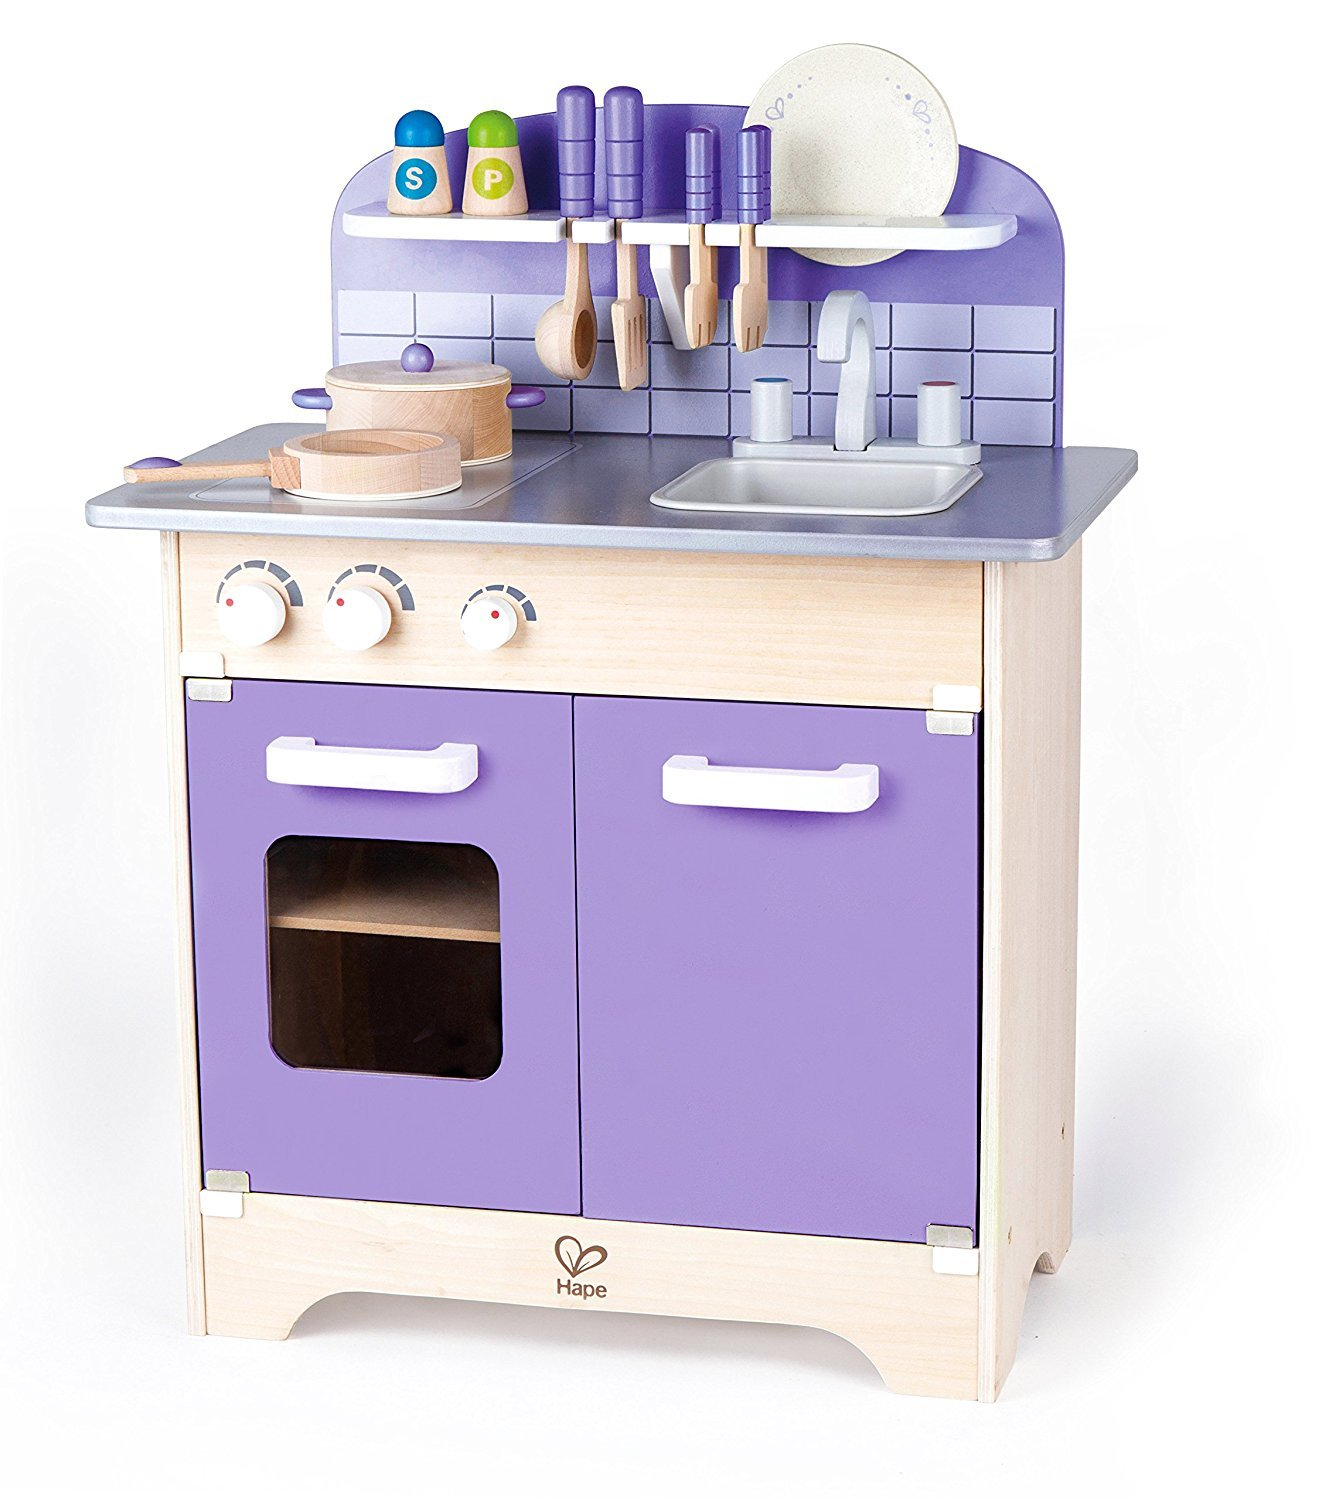 Kitchen Set Letter L: 10 Best Wooden Play Kitchens For Kids